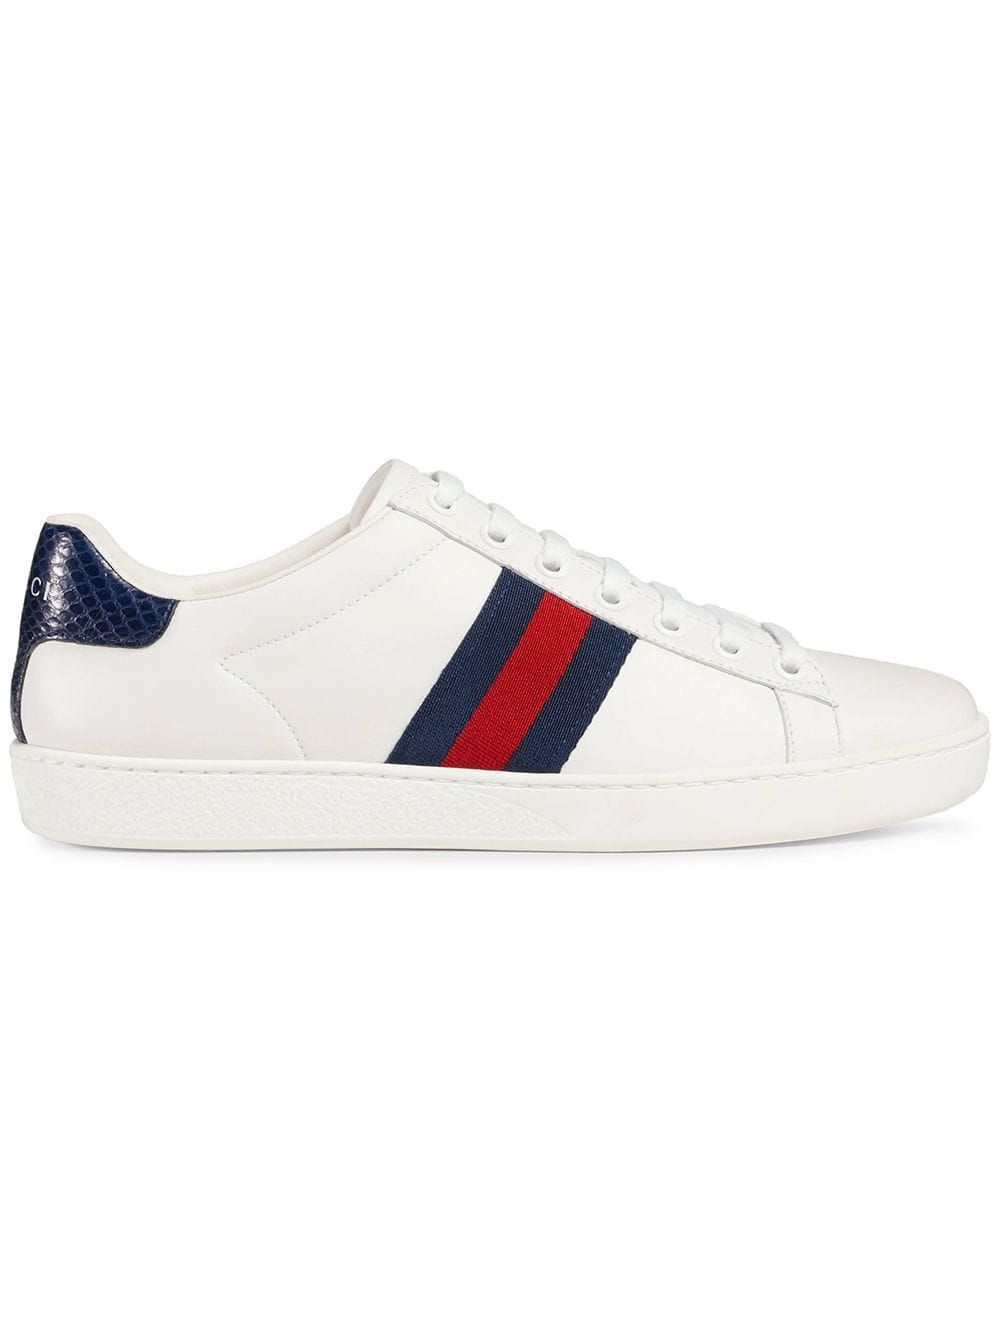 29d5f8353 Gucci Ace low-top sneakers - White in 2019 | Products | Gucci ...